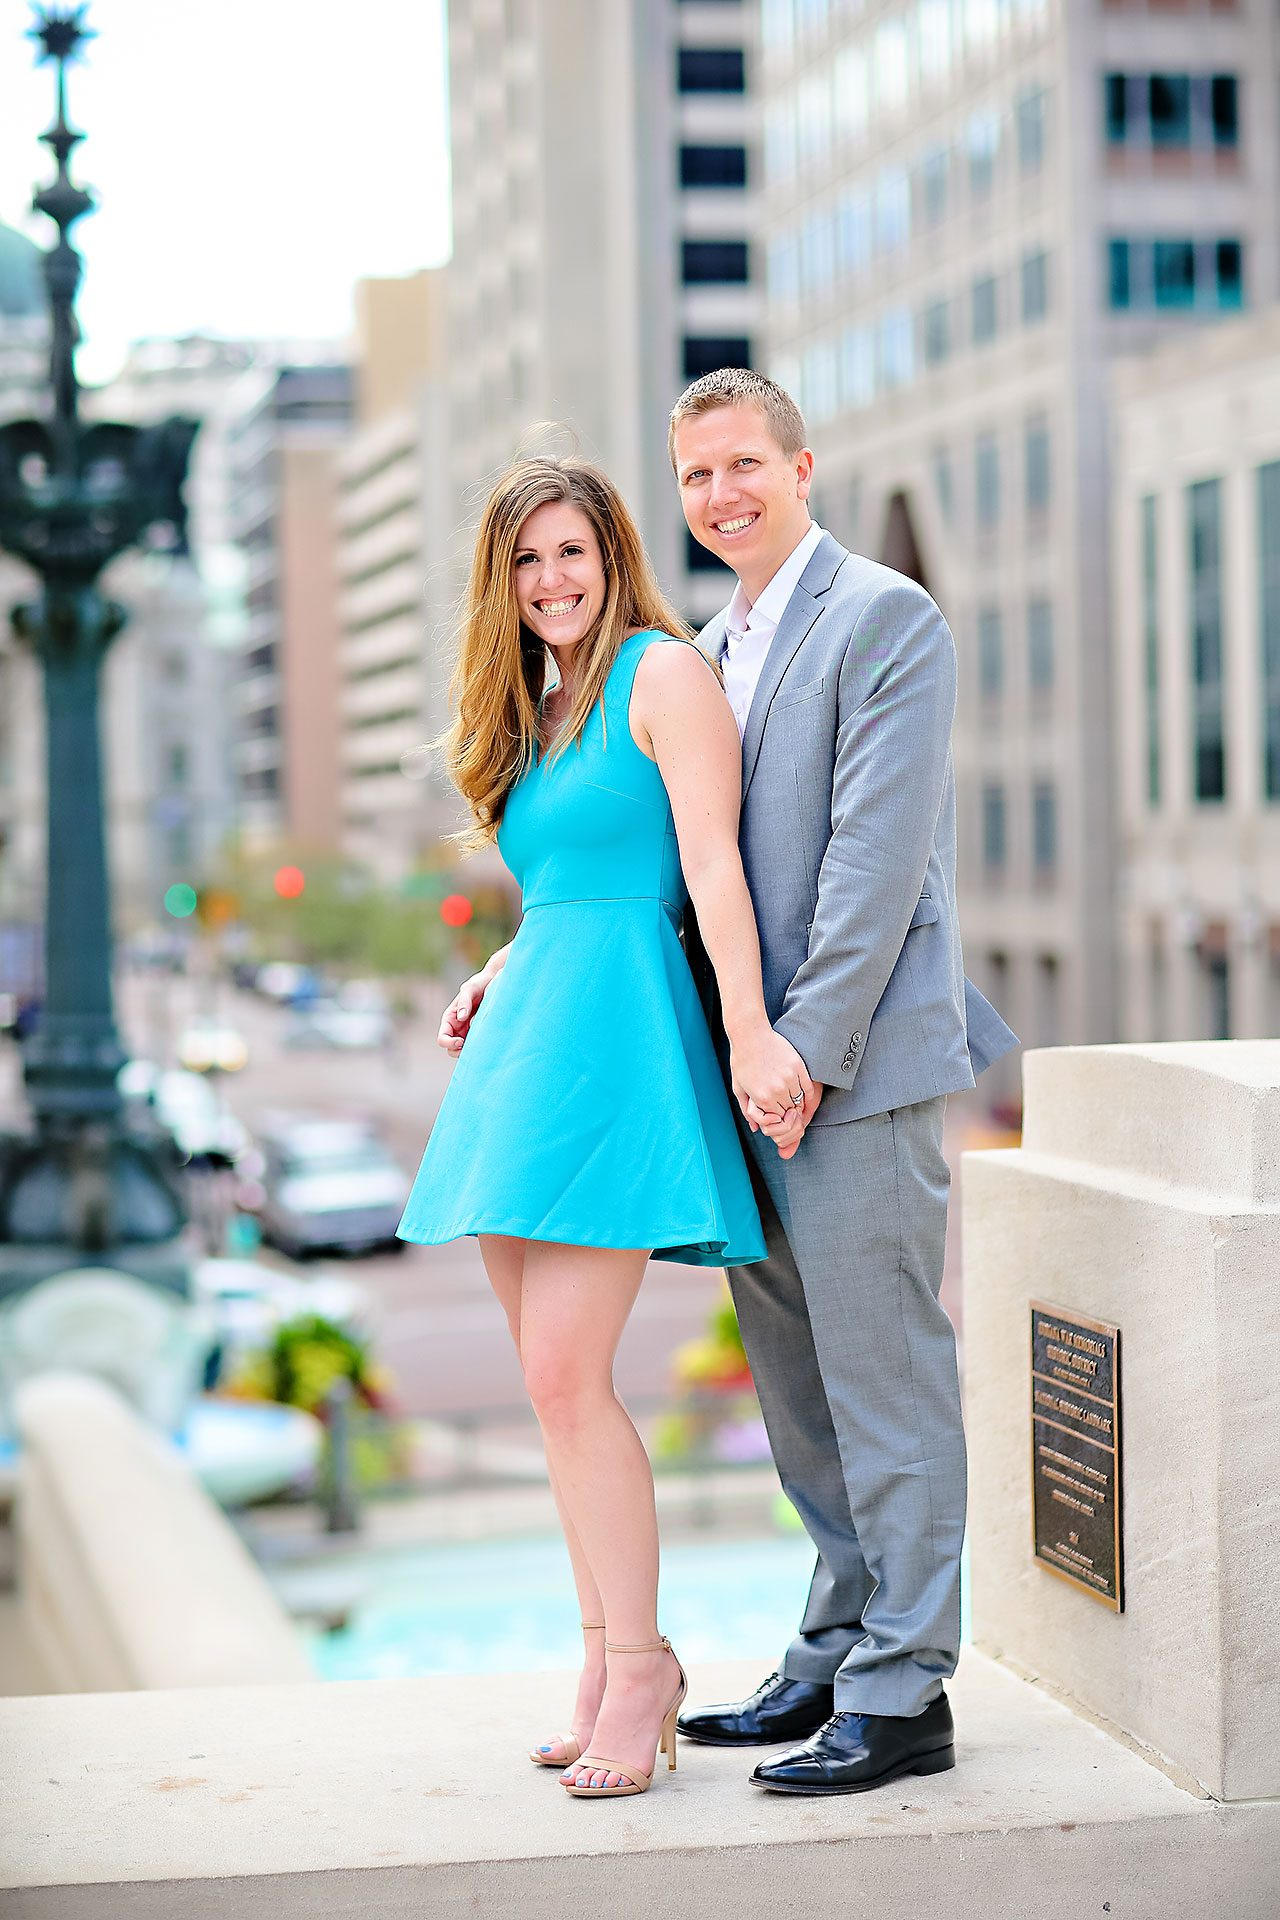 Chelsea Jeff Downtown Indy Engagement Session 001